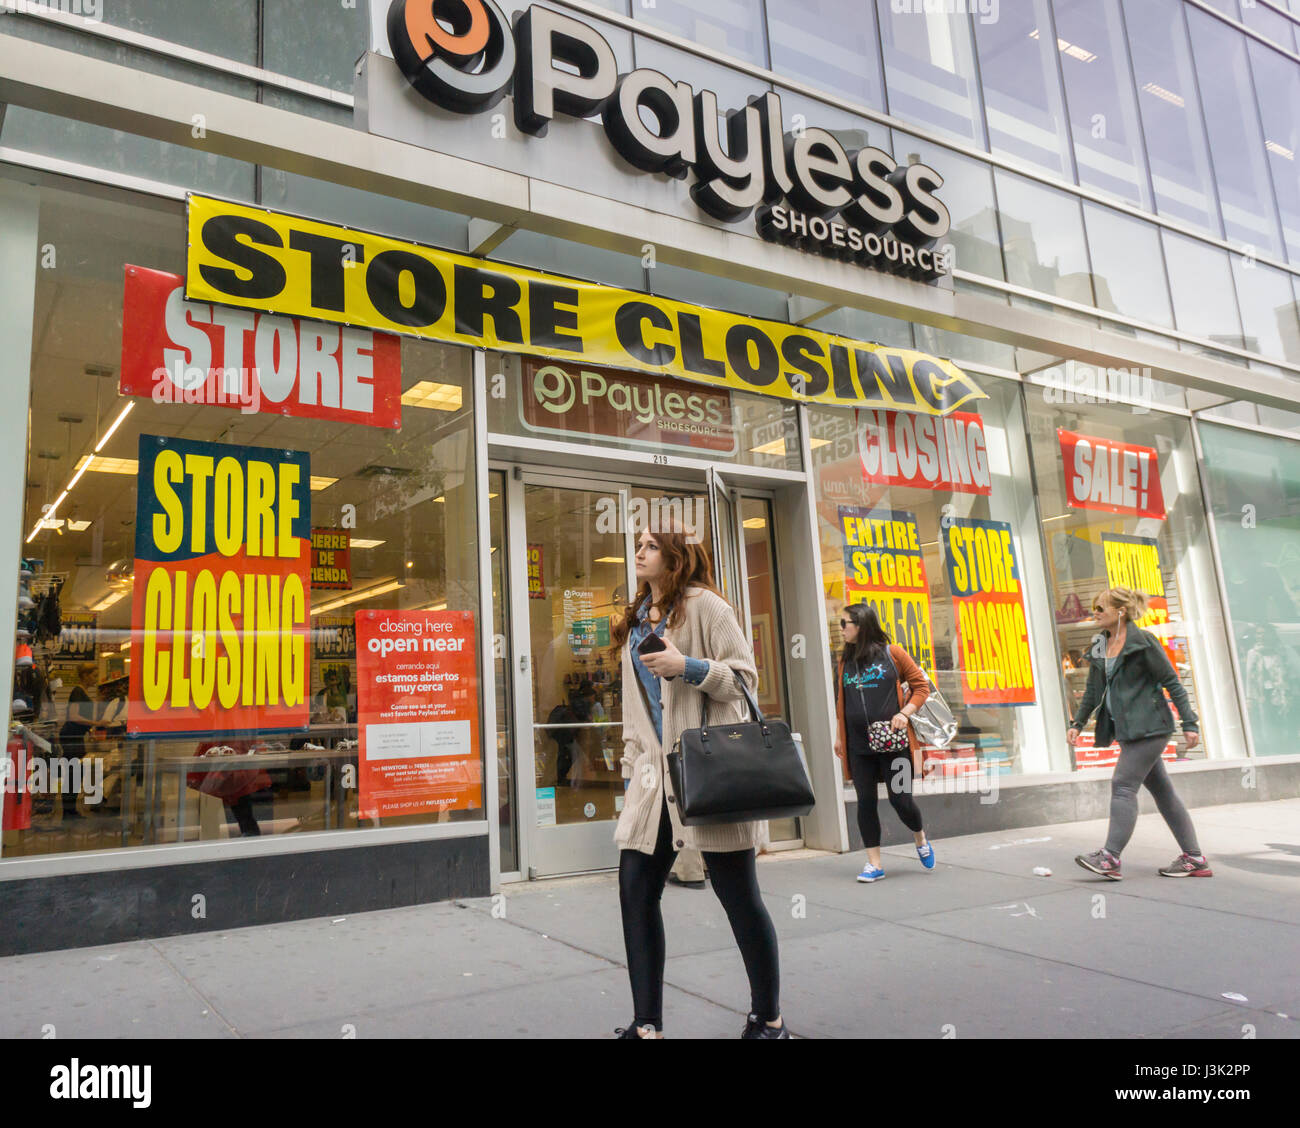 7fee56e1a A Payless ShoeSource store in New York advertises its store closing sales  on Wednesday